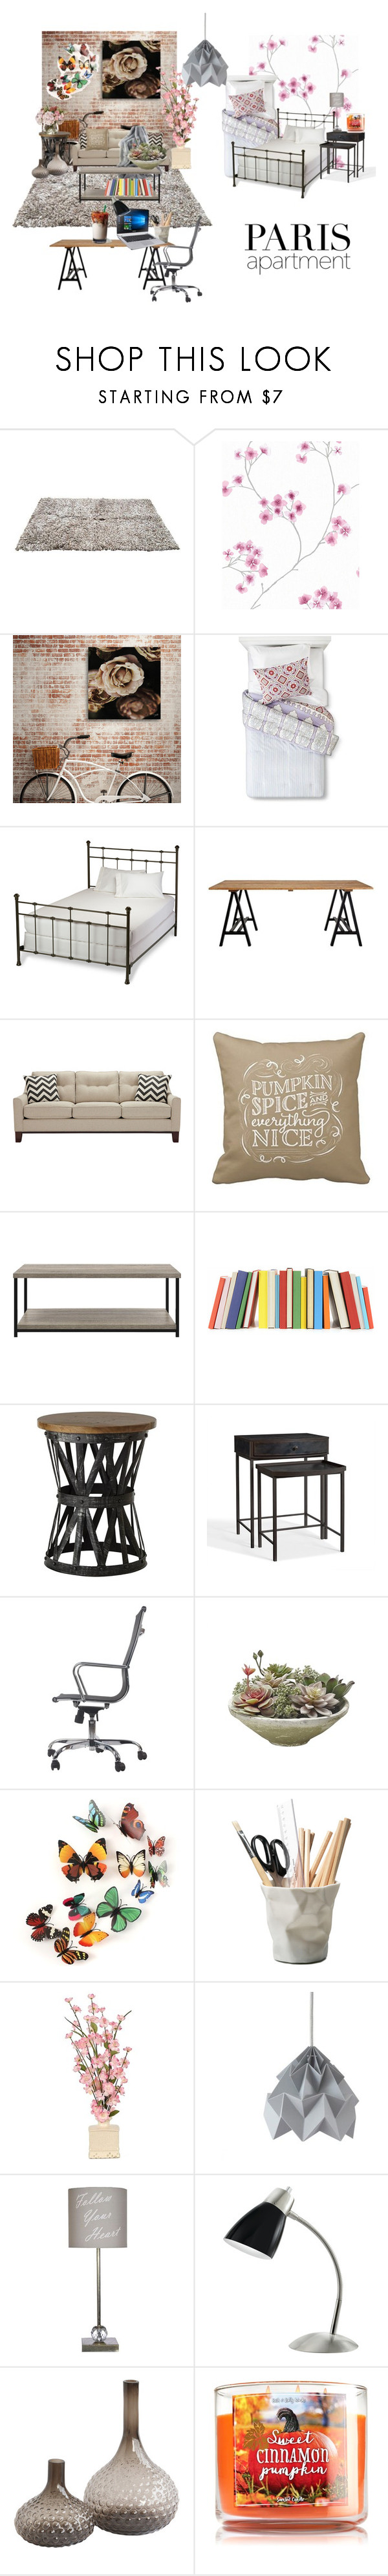 """""""Parisian Apartment"""" by wynonnamaree ❤ liked on Polyvore featuring interior, interiors, interior design, home, home decor, interior decorating, John Robshaw, L.L.Bean, Home Decorators Collection and Pottery Barn"""